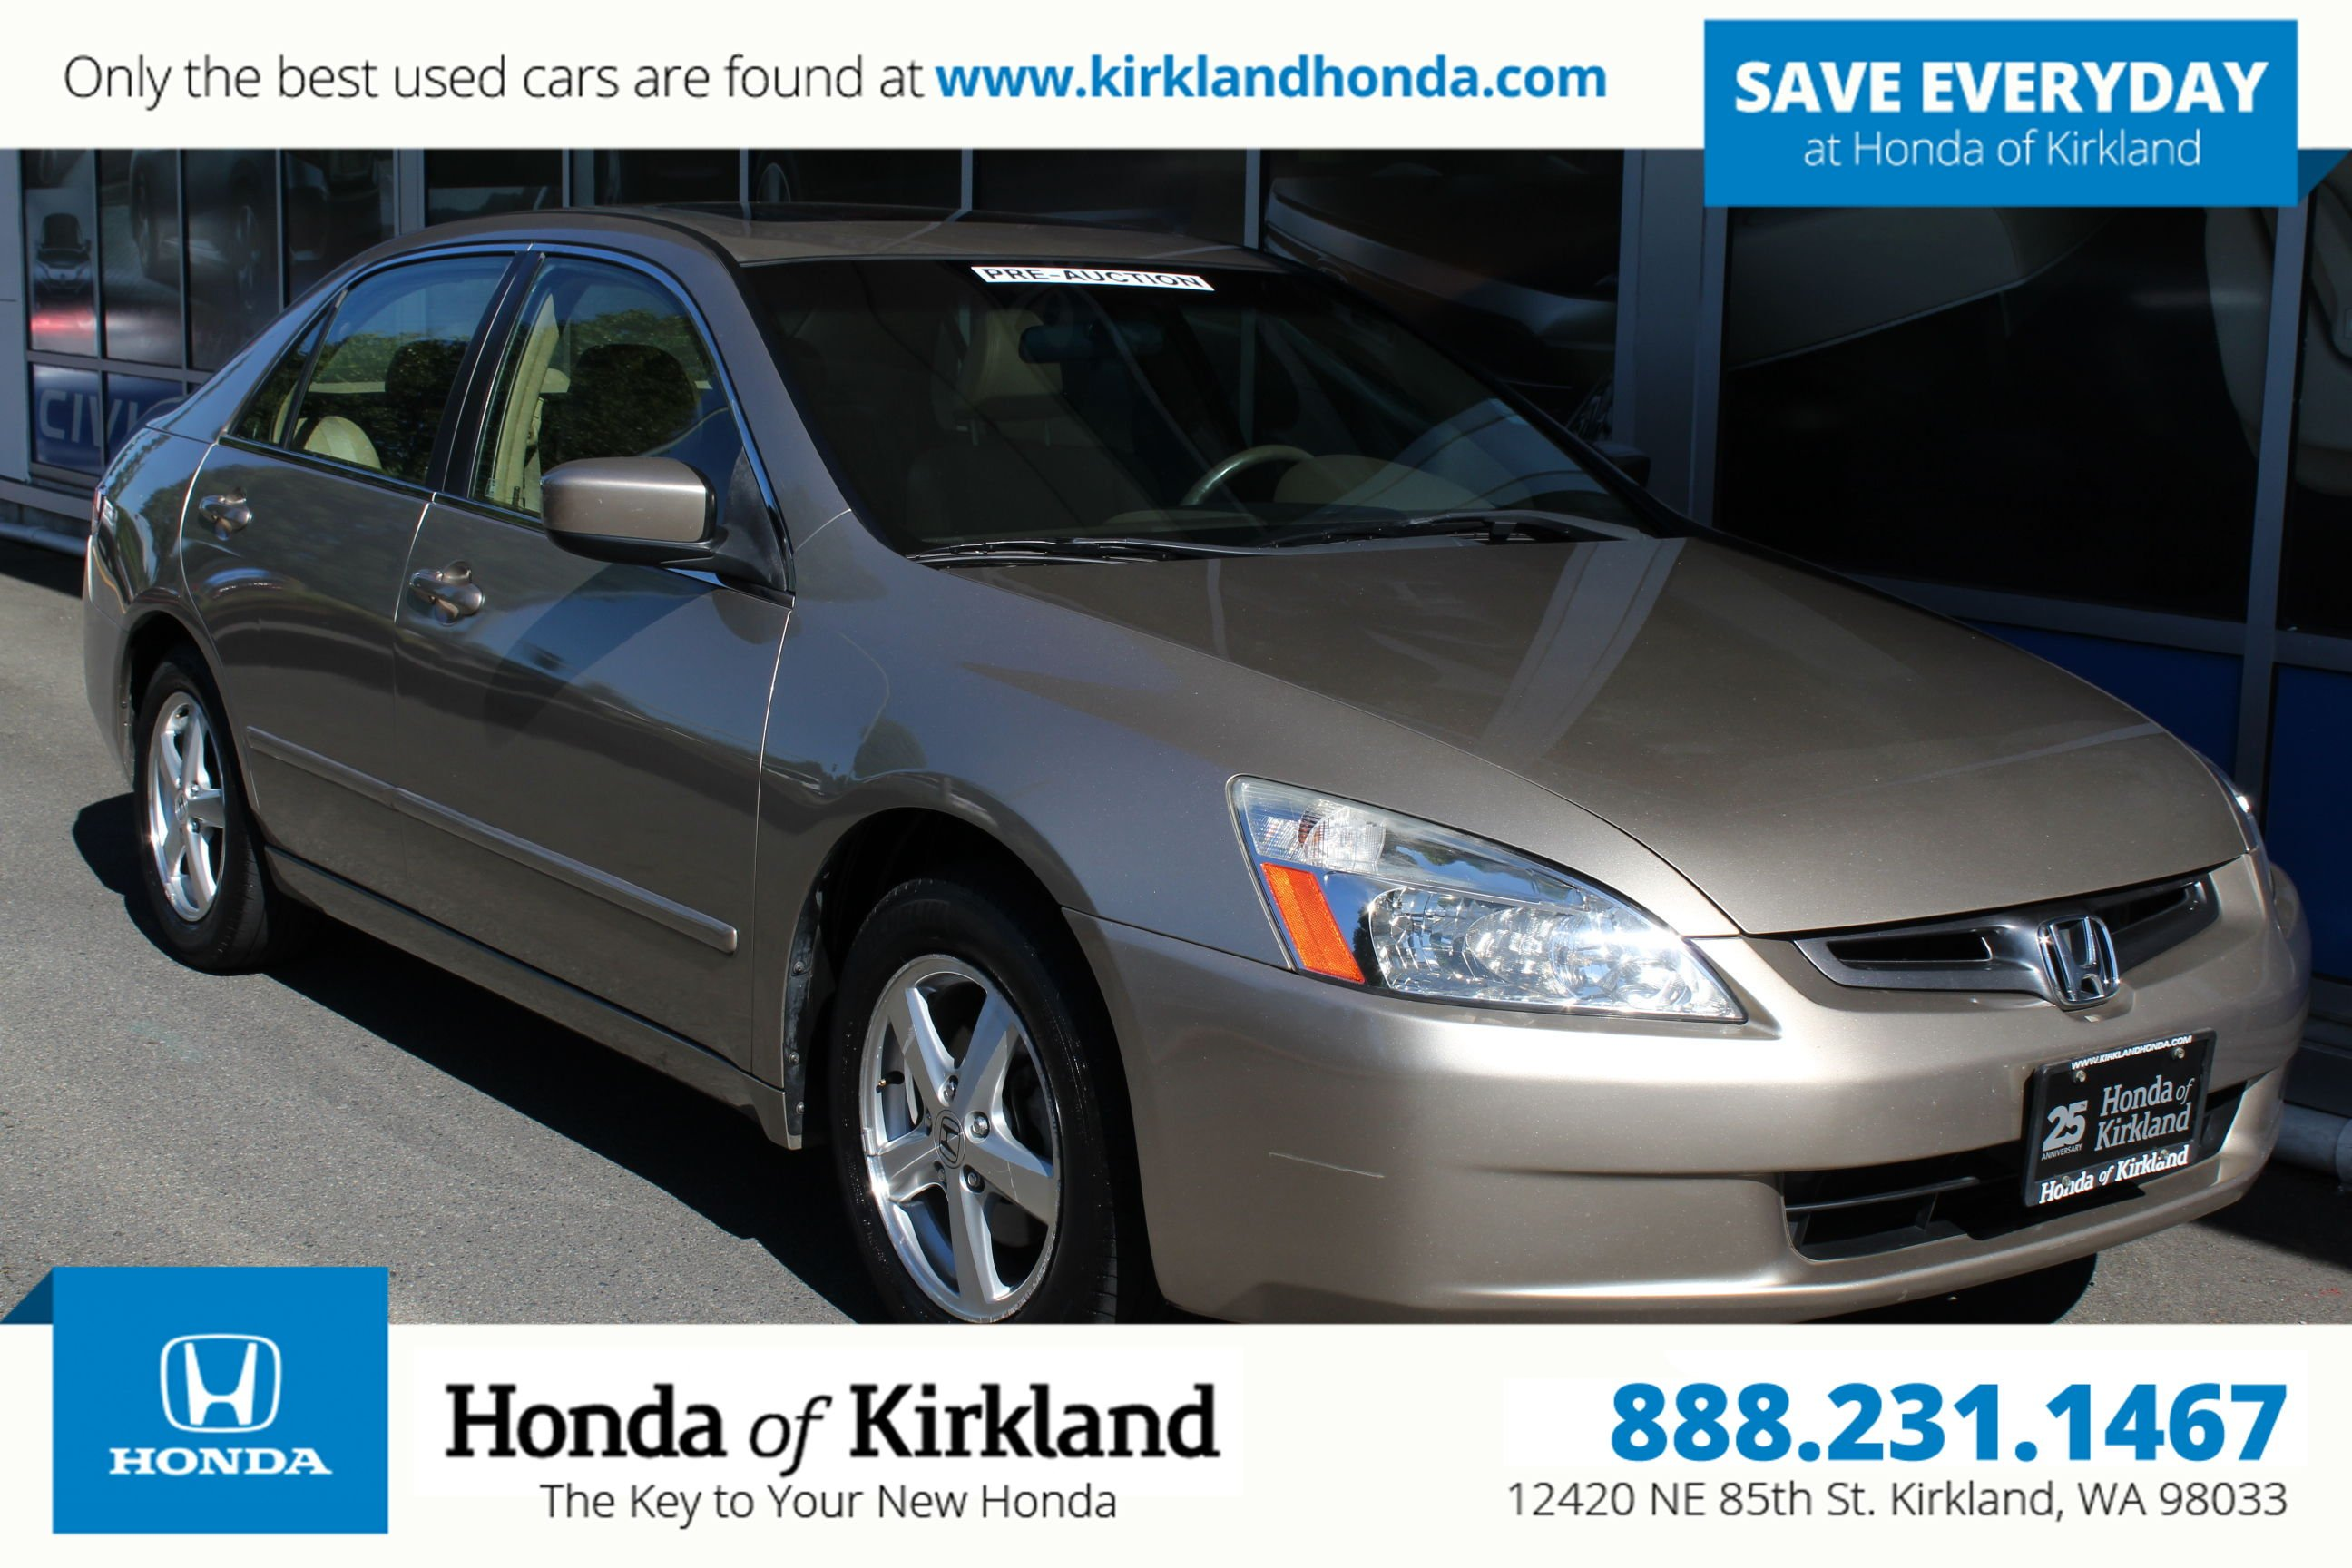 Pre Owned 2004 Honda Accord Sedan EX w Leather 4dr Car in Kirkland